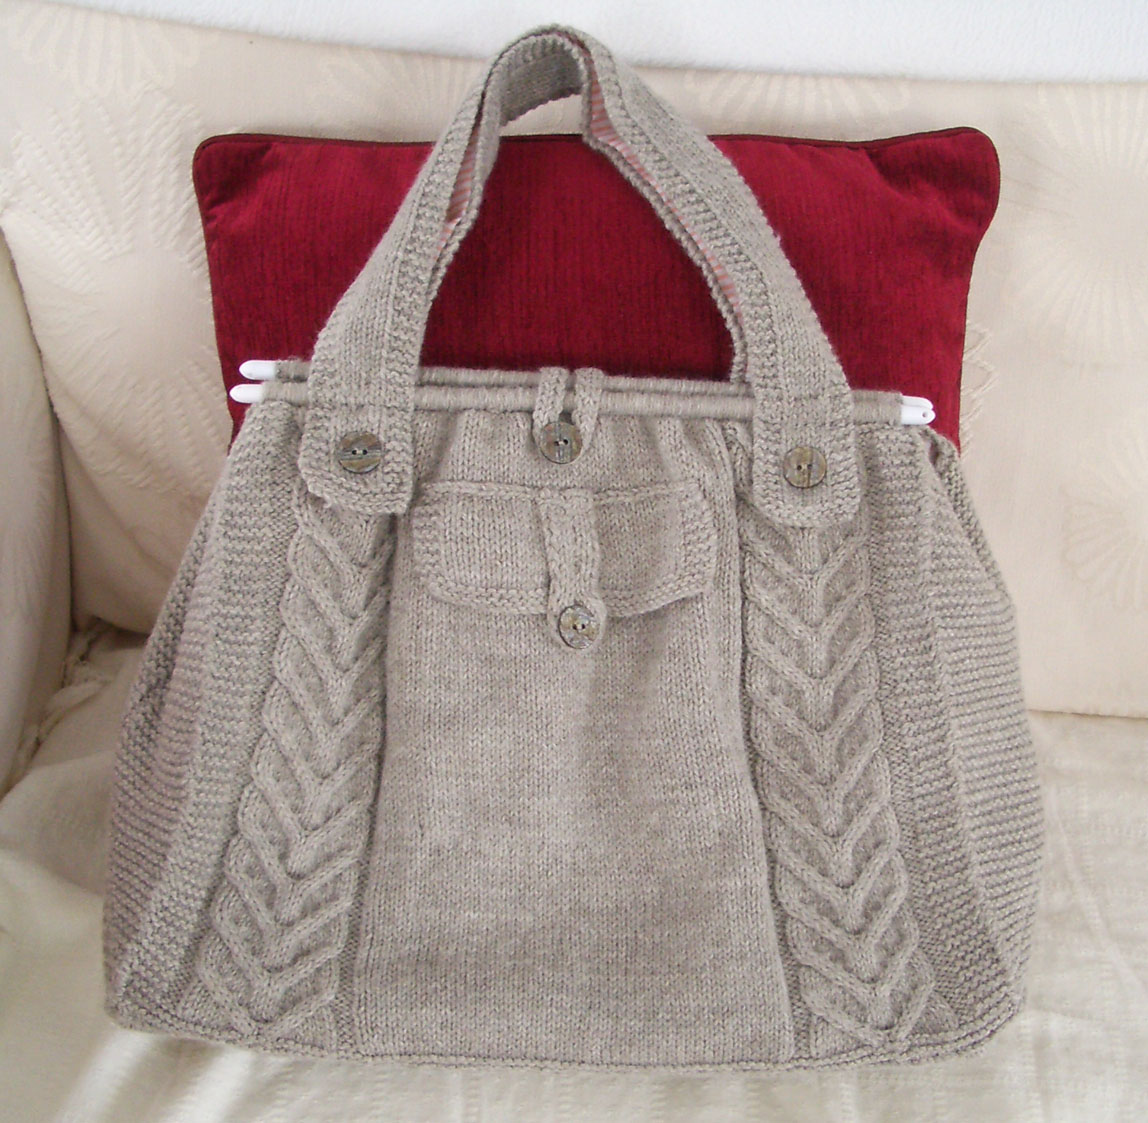 Knitted Handbags Patterns : Knitted Creations: Cable Tote